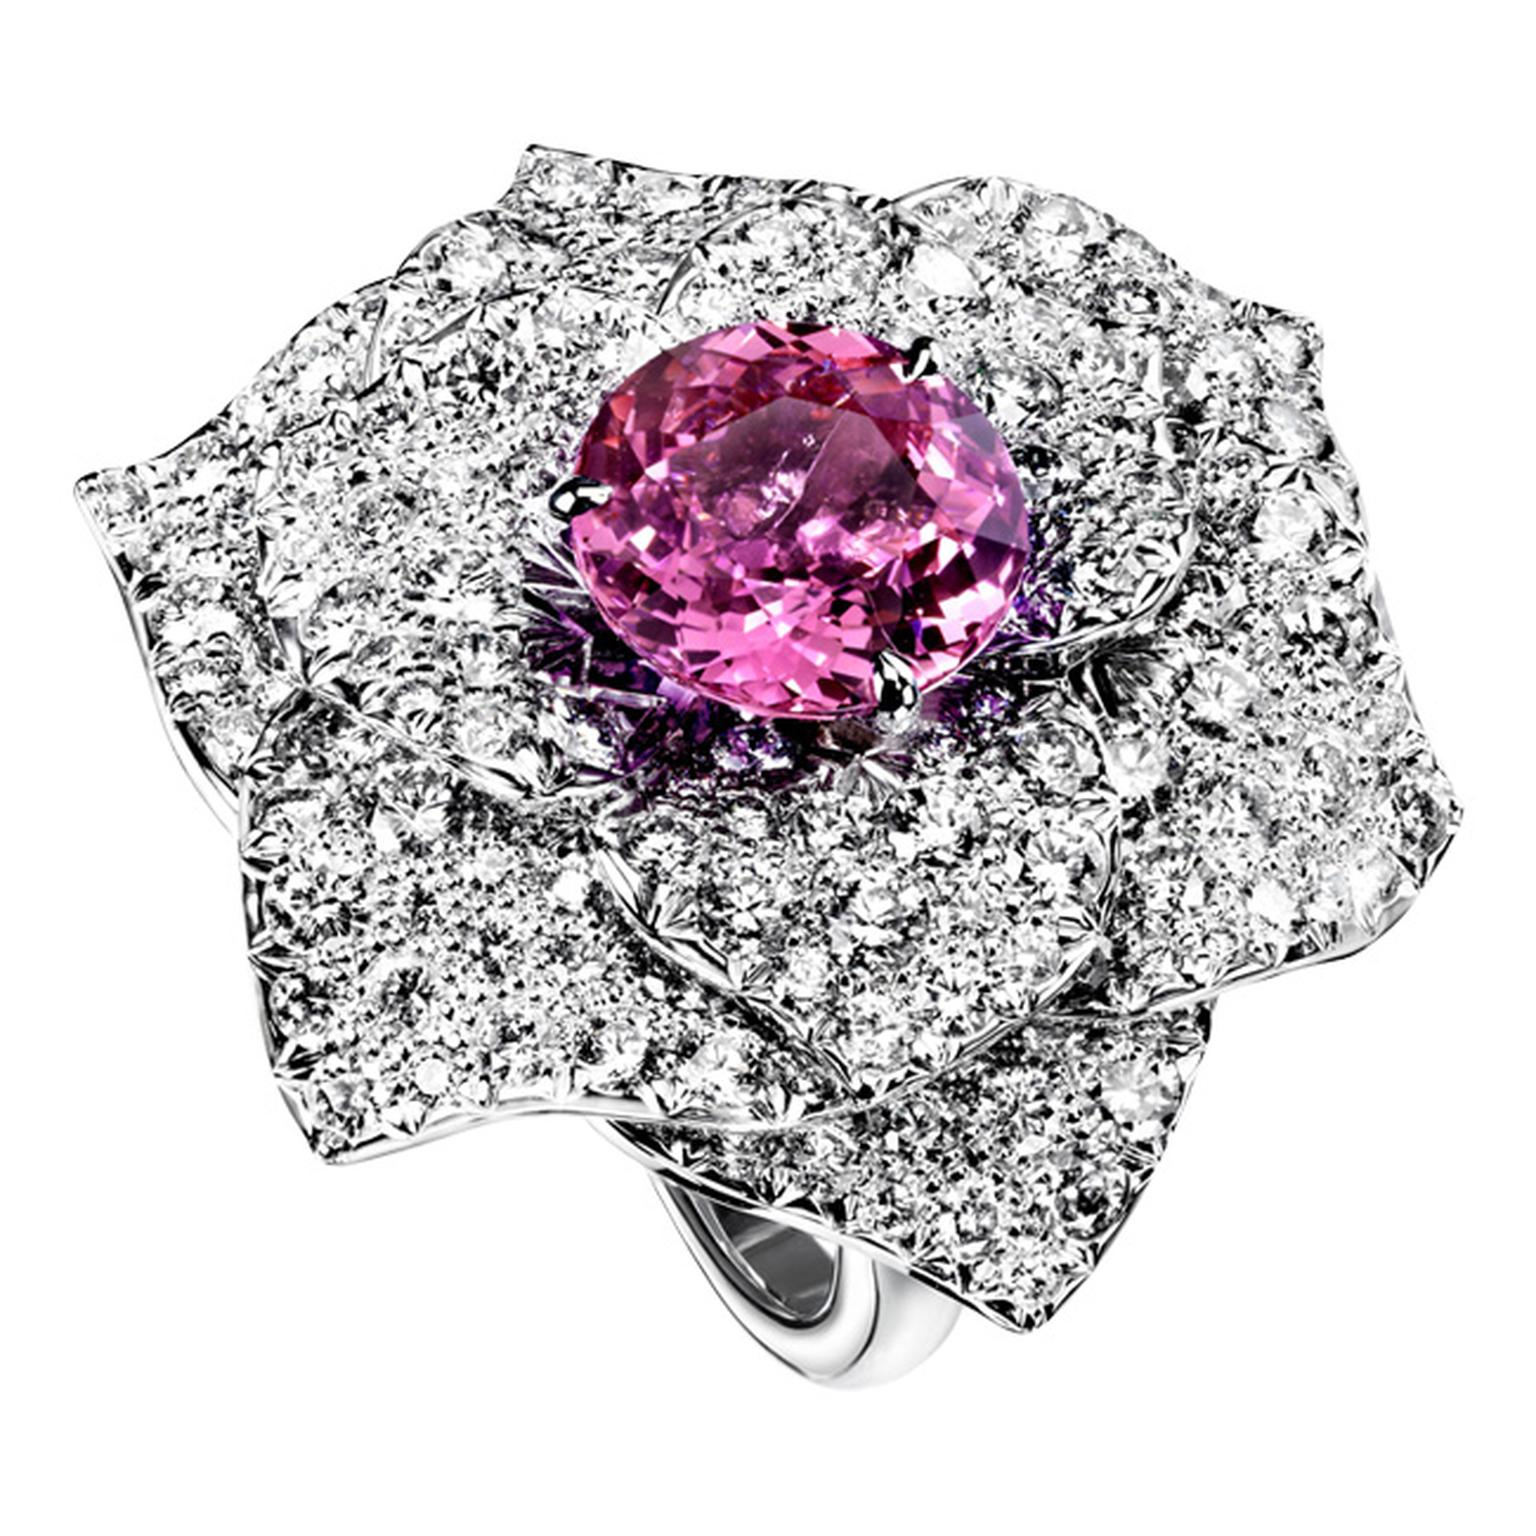 Piaget Limelight Garden Party Rose Ring_20131205_Main